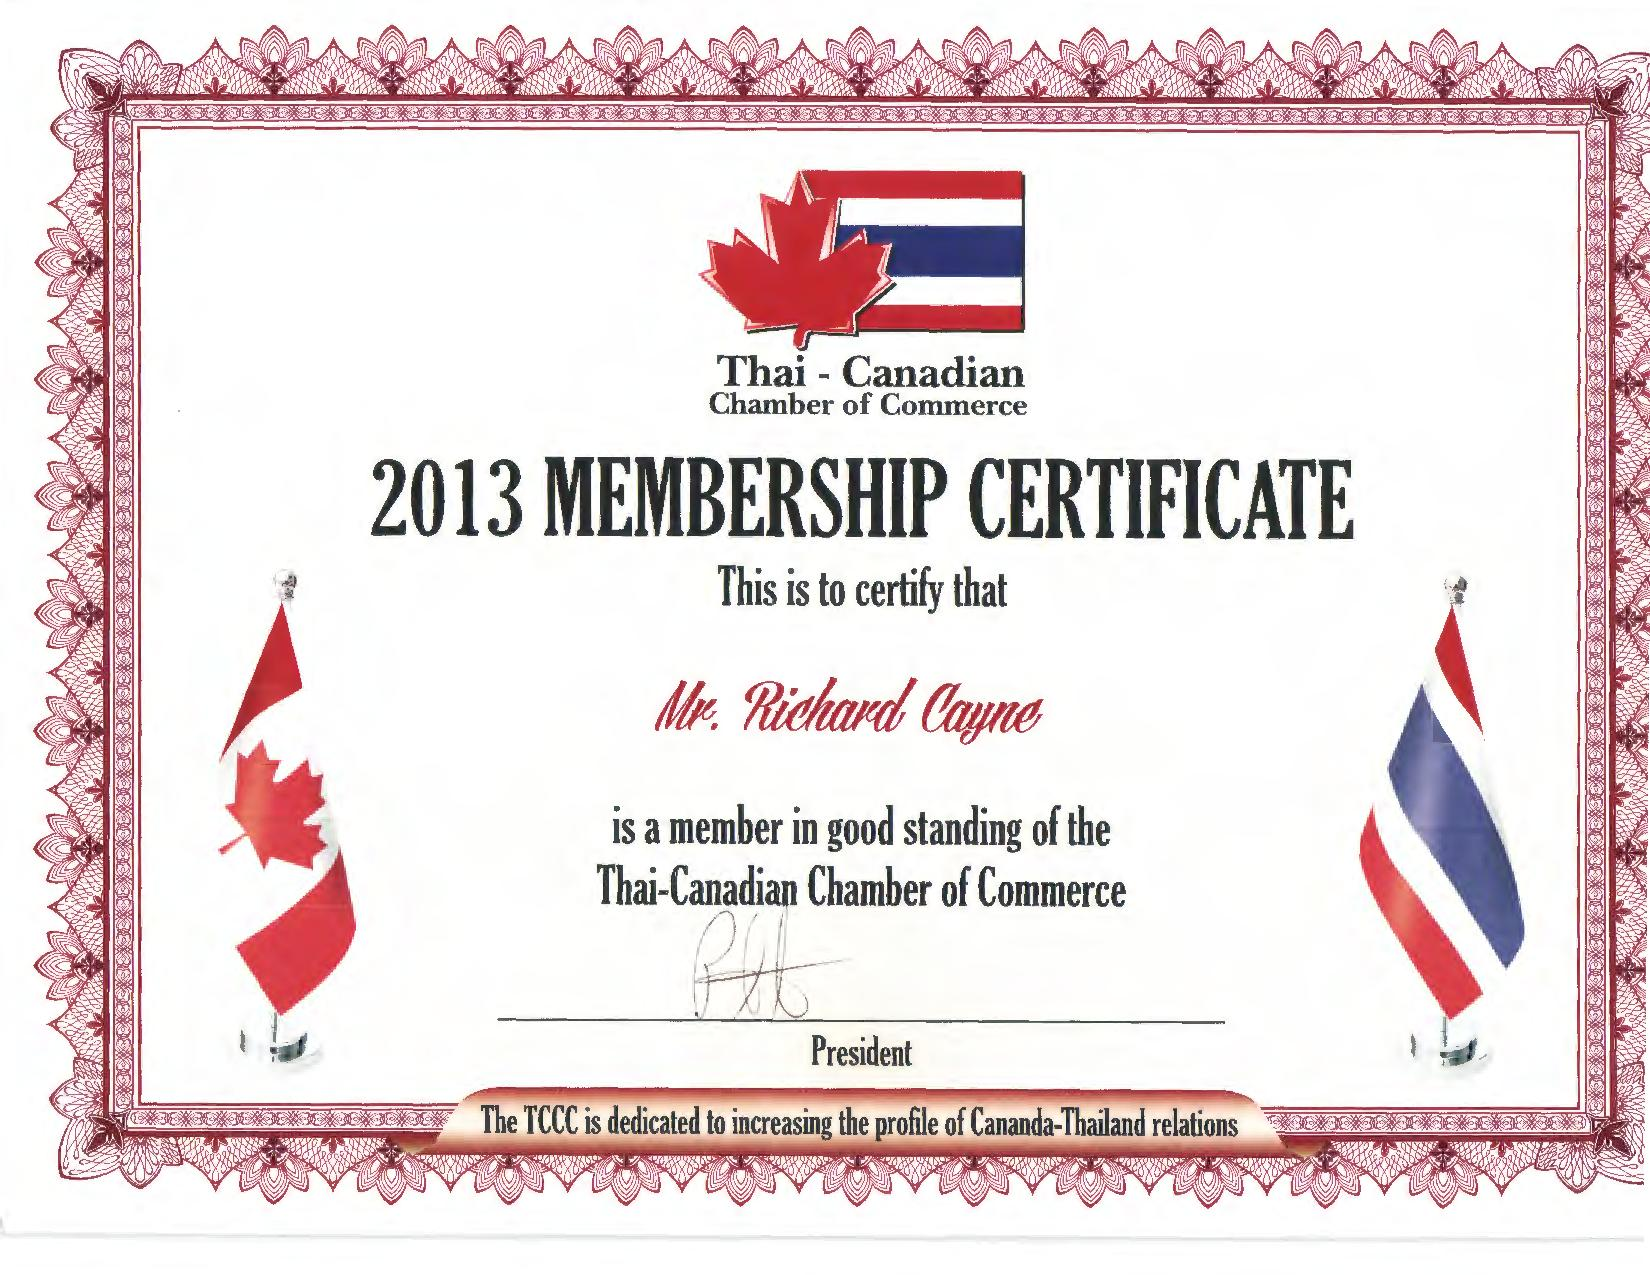 Richard Cayne Canadian Chamber of Commerce Thailand certificate